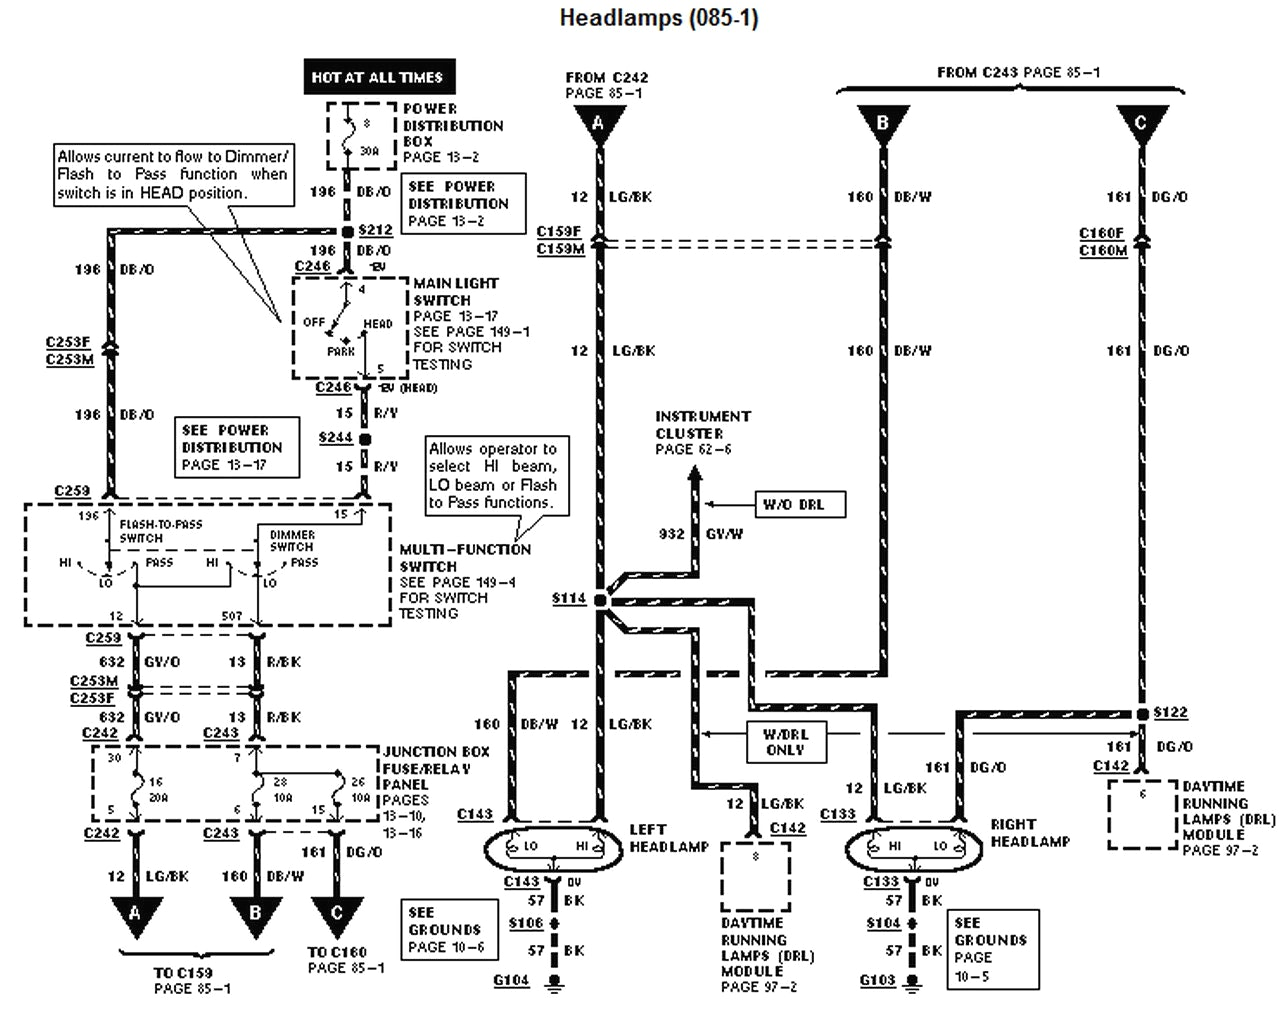 simple electrical wiring diagrams images 98 jeep cherokee radio diagram electric circuit drawing at getdrawings com free for personal use 1280x1021 basic unbelievable and